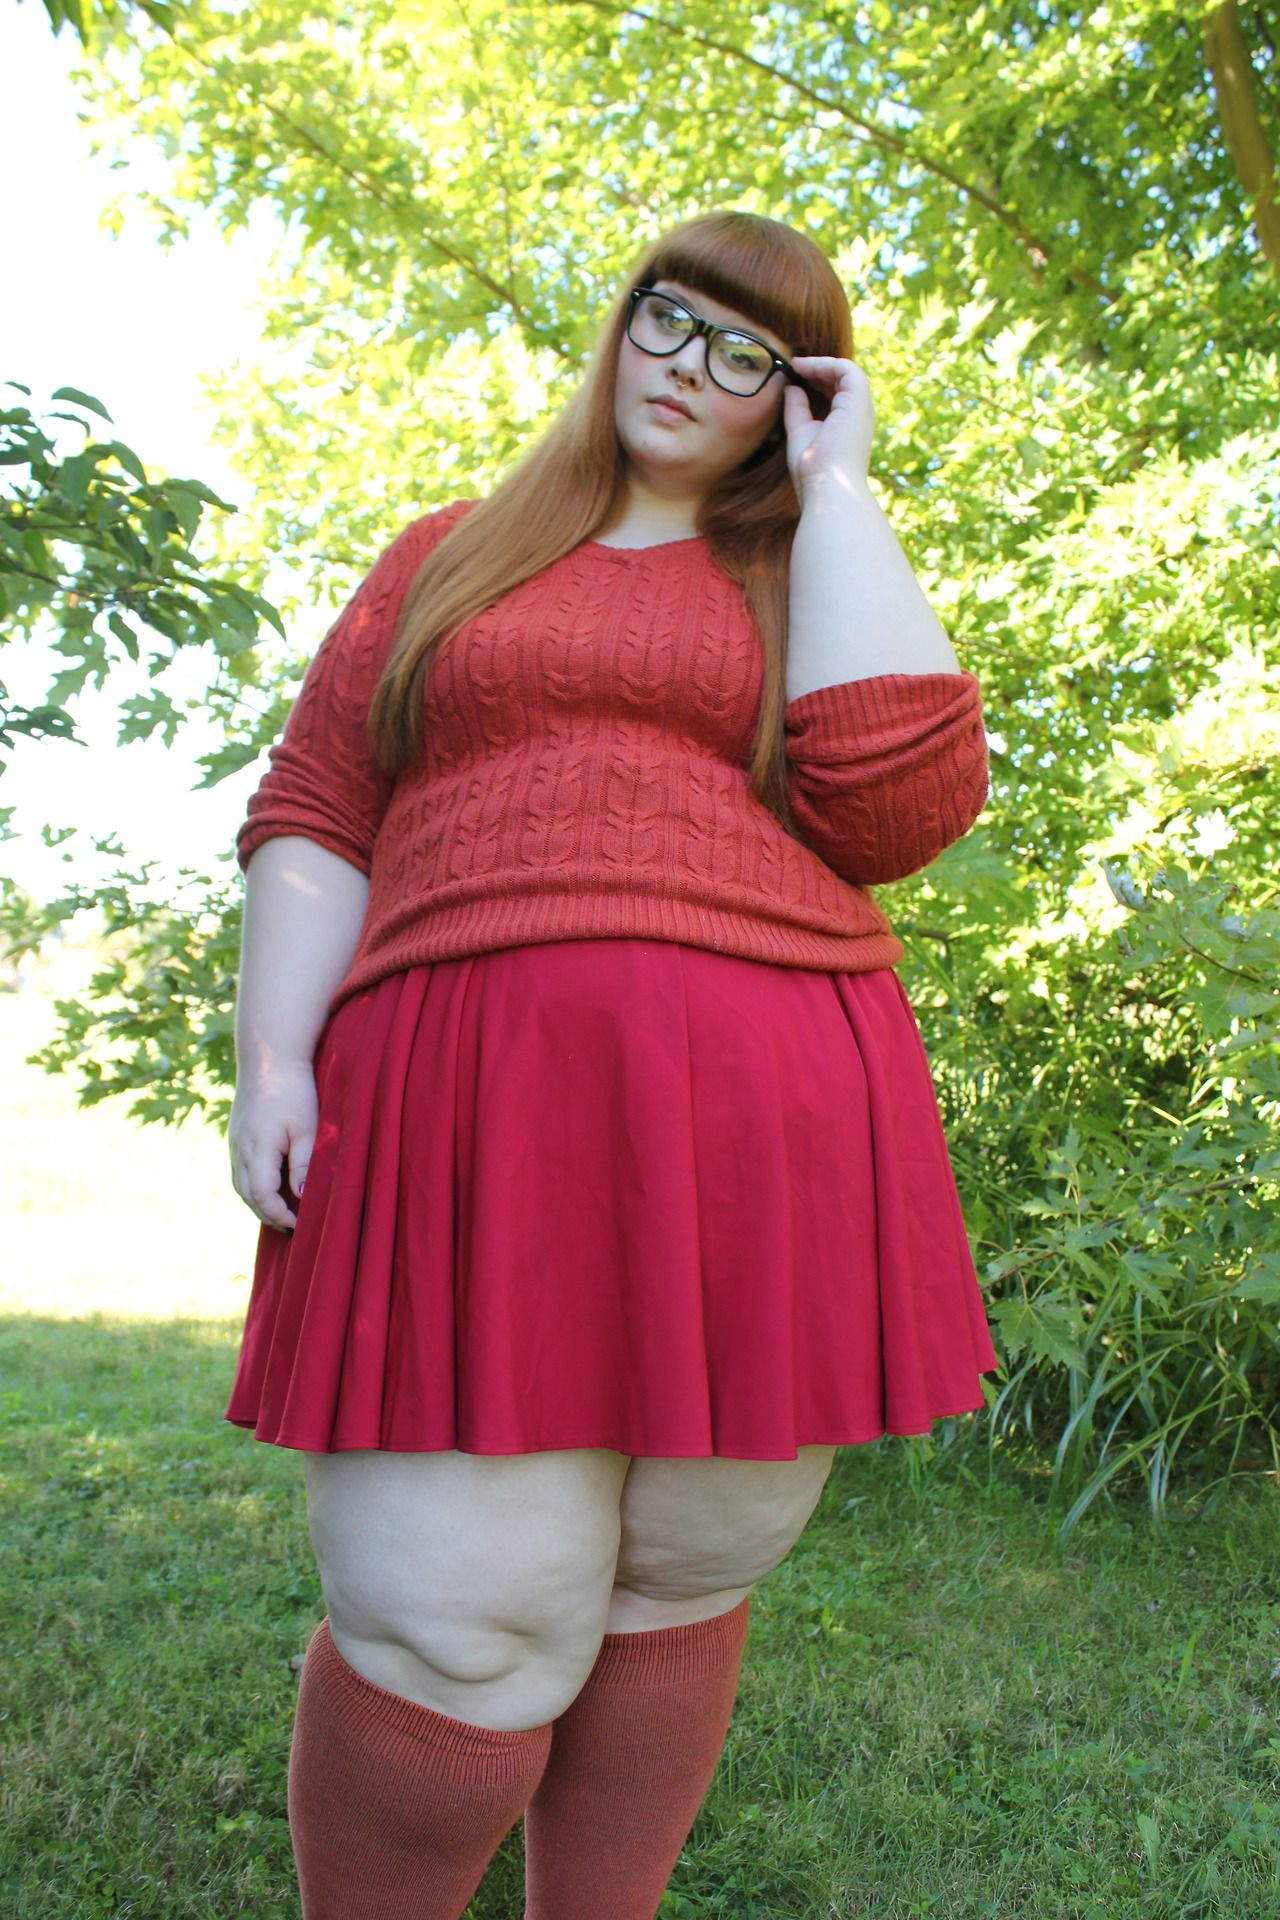 arnett bbw dating site It was that video that inspired wooplus, an app exclusively for the plus size  dating community there are several websites dedicated to plus.